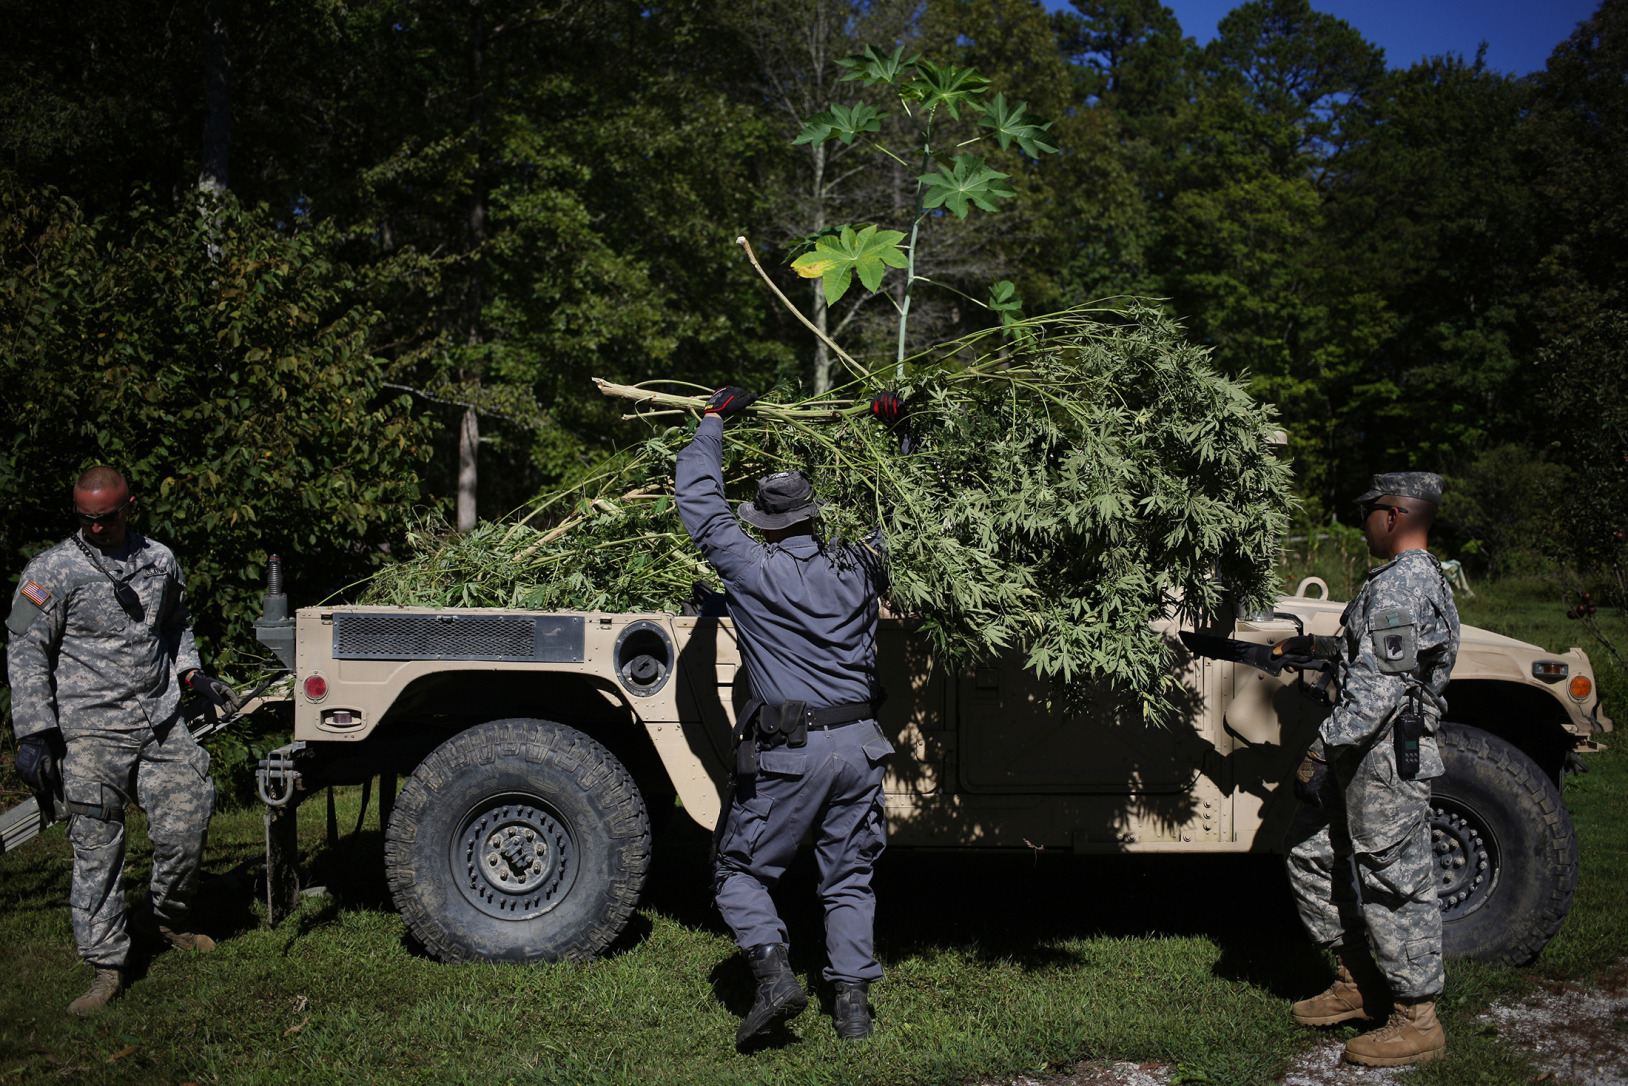 Burning Kentucky's Illegal Weed: A Ride-Along With the Cannabis Cops